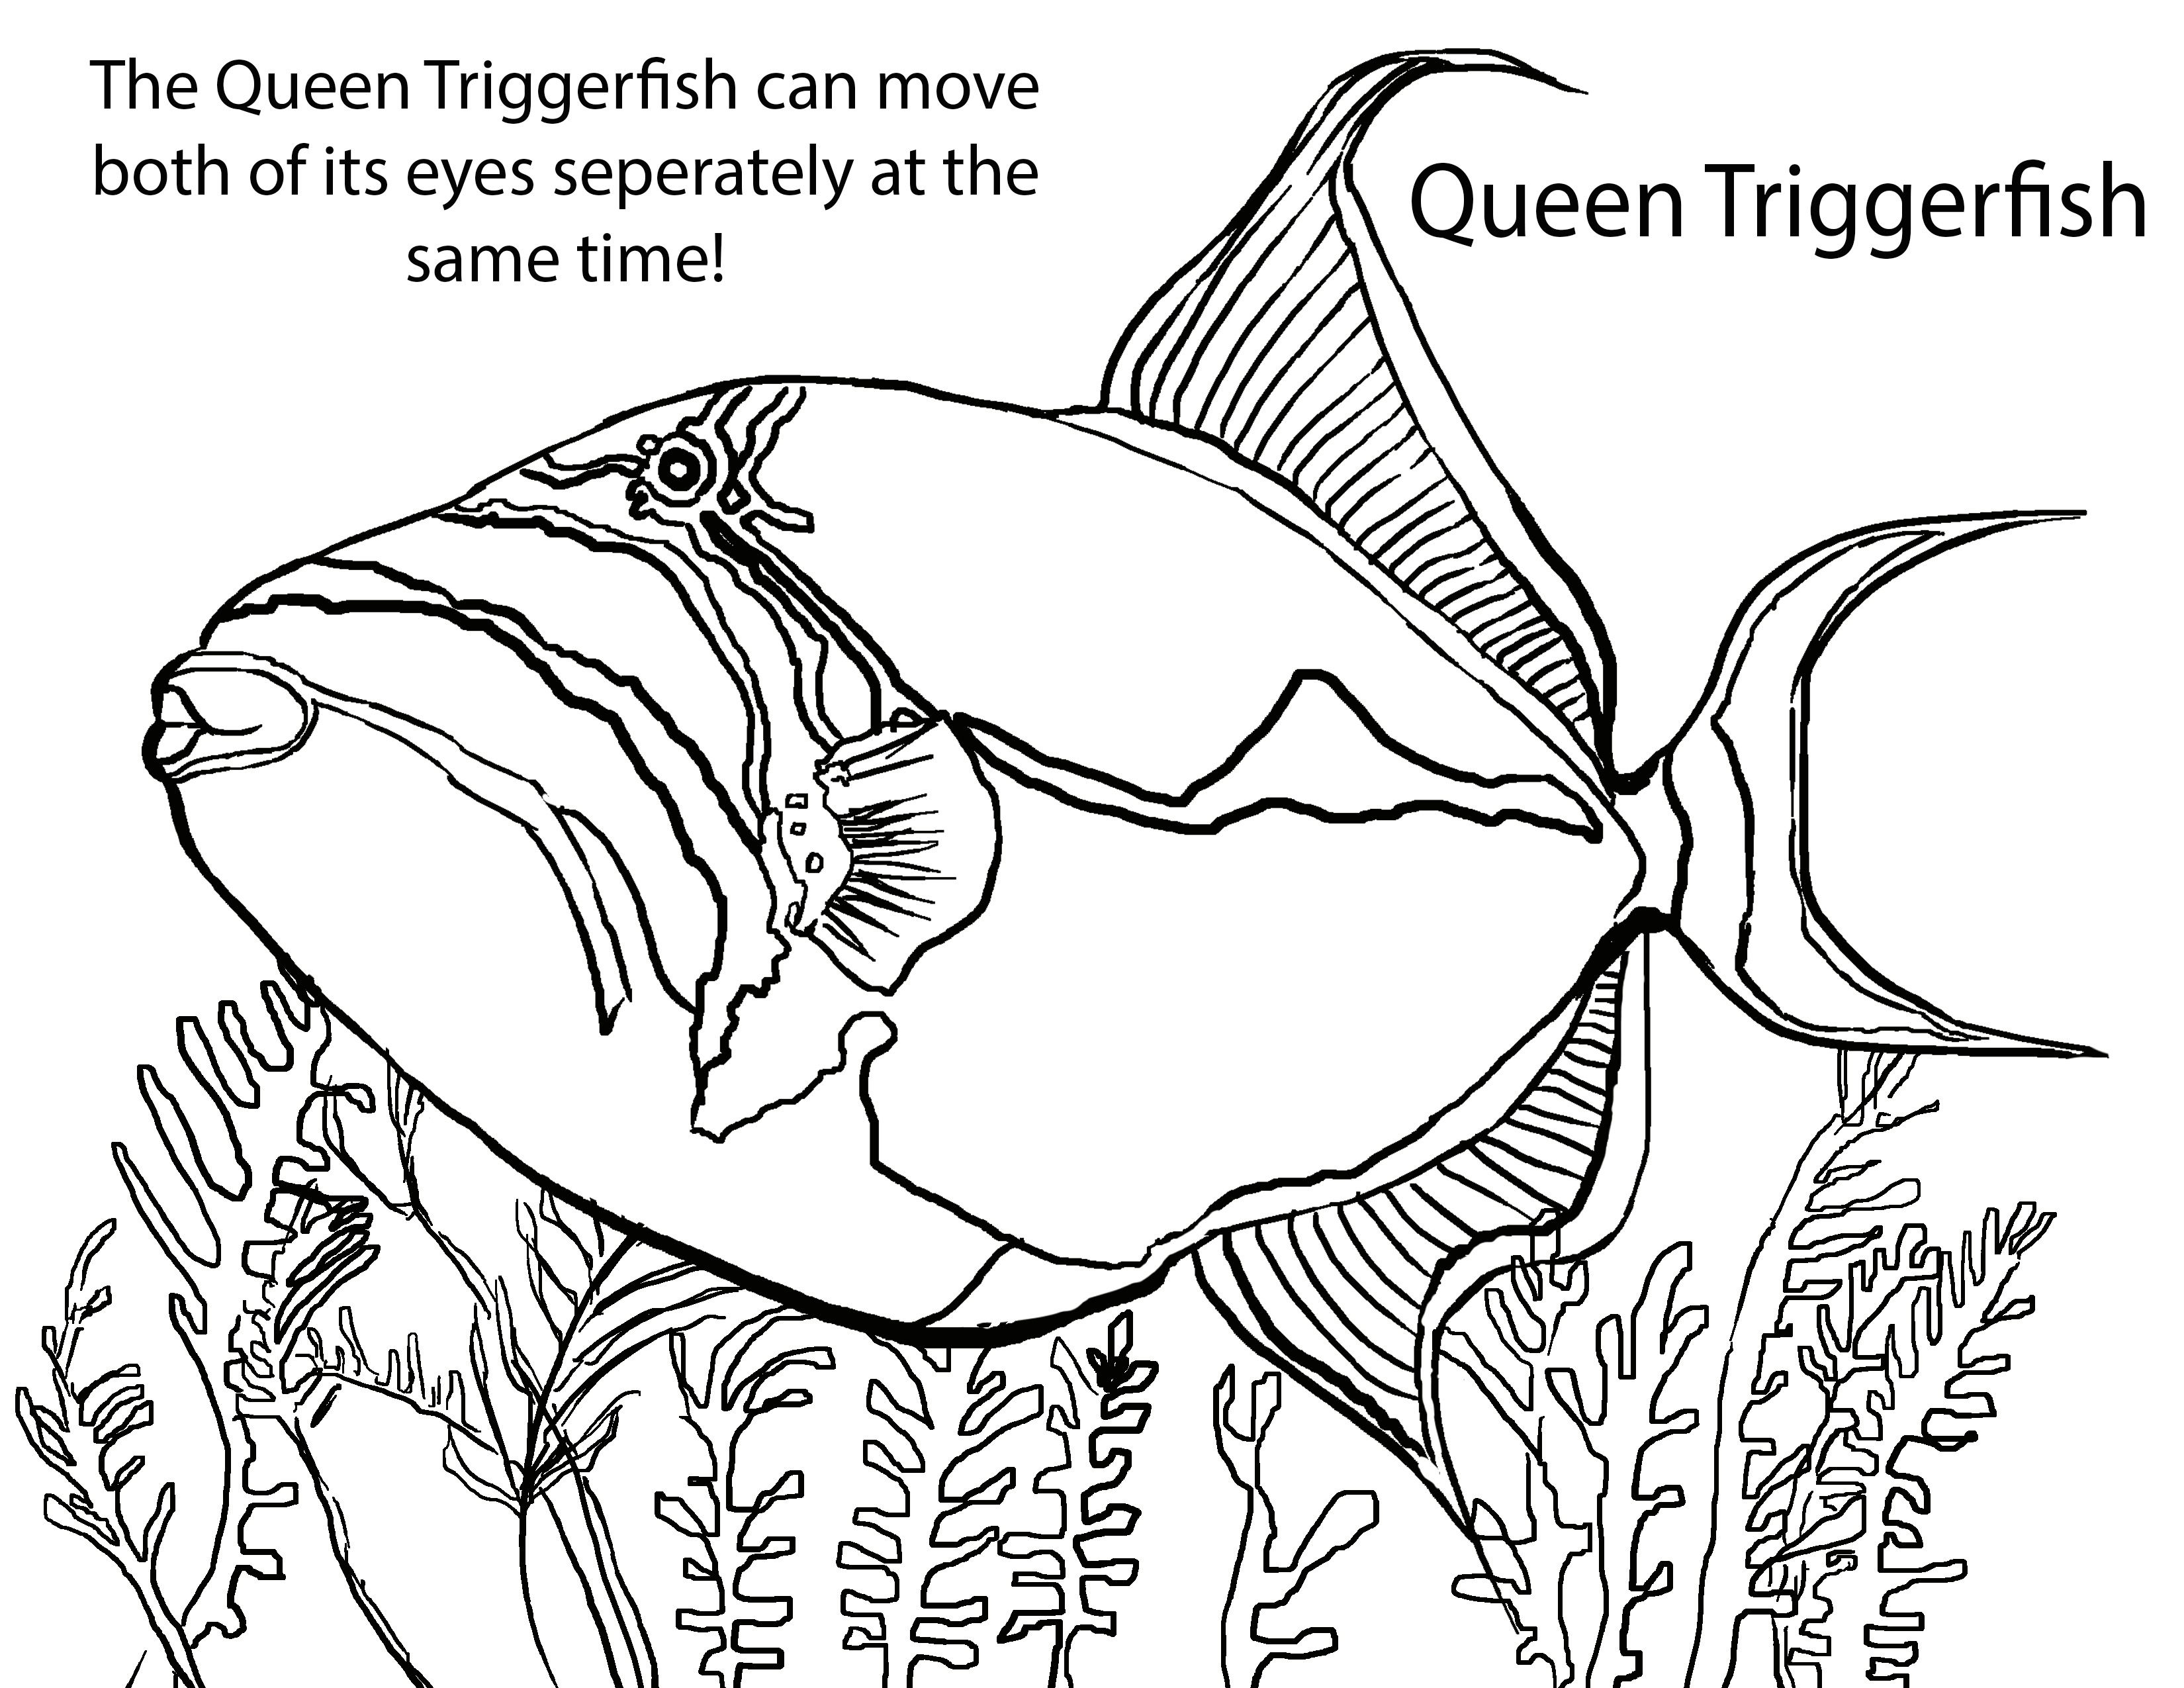 Gracejeanyu Bioventures Coloring Pages Fish Coloring Page